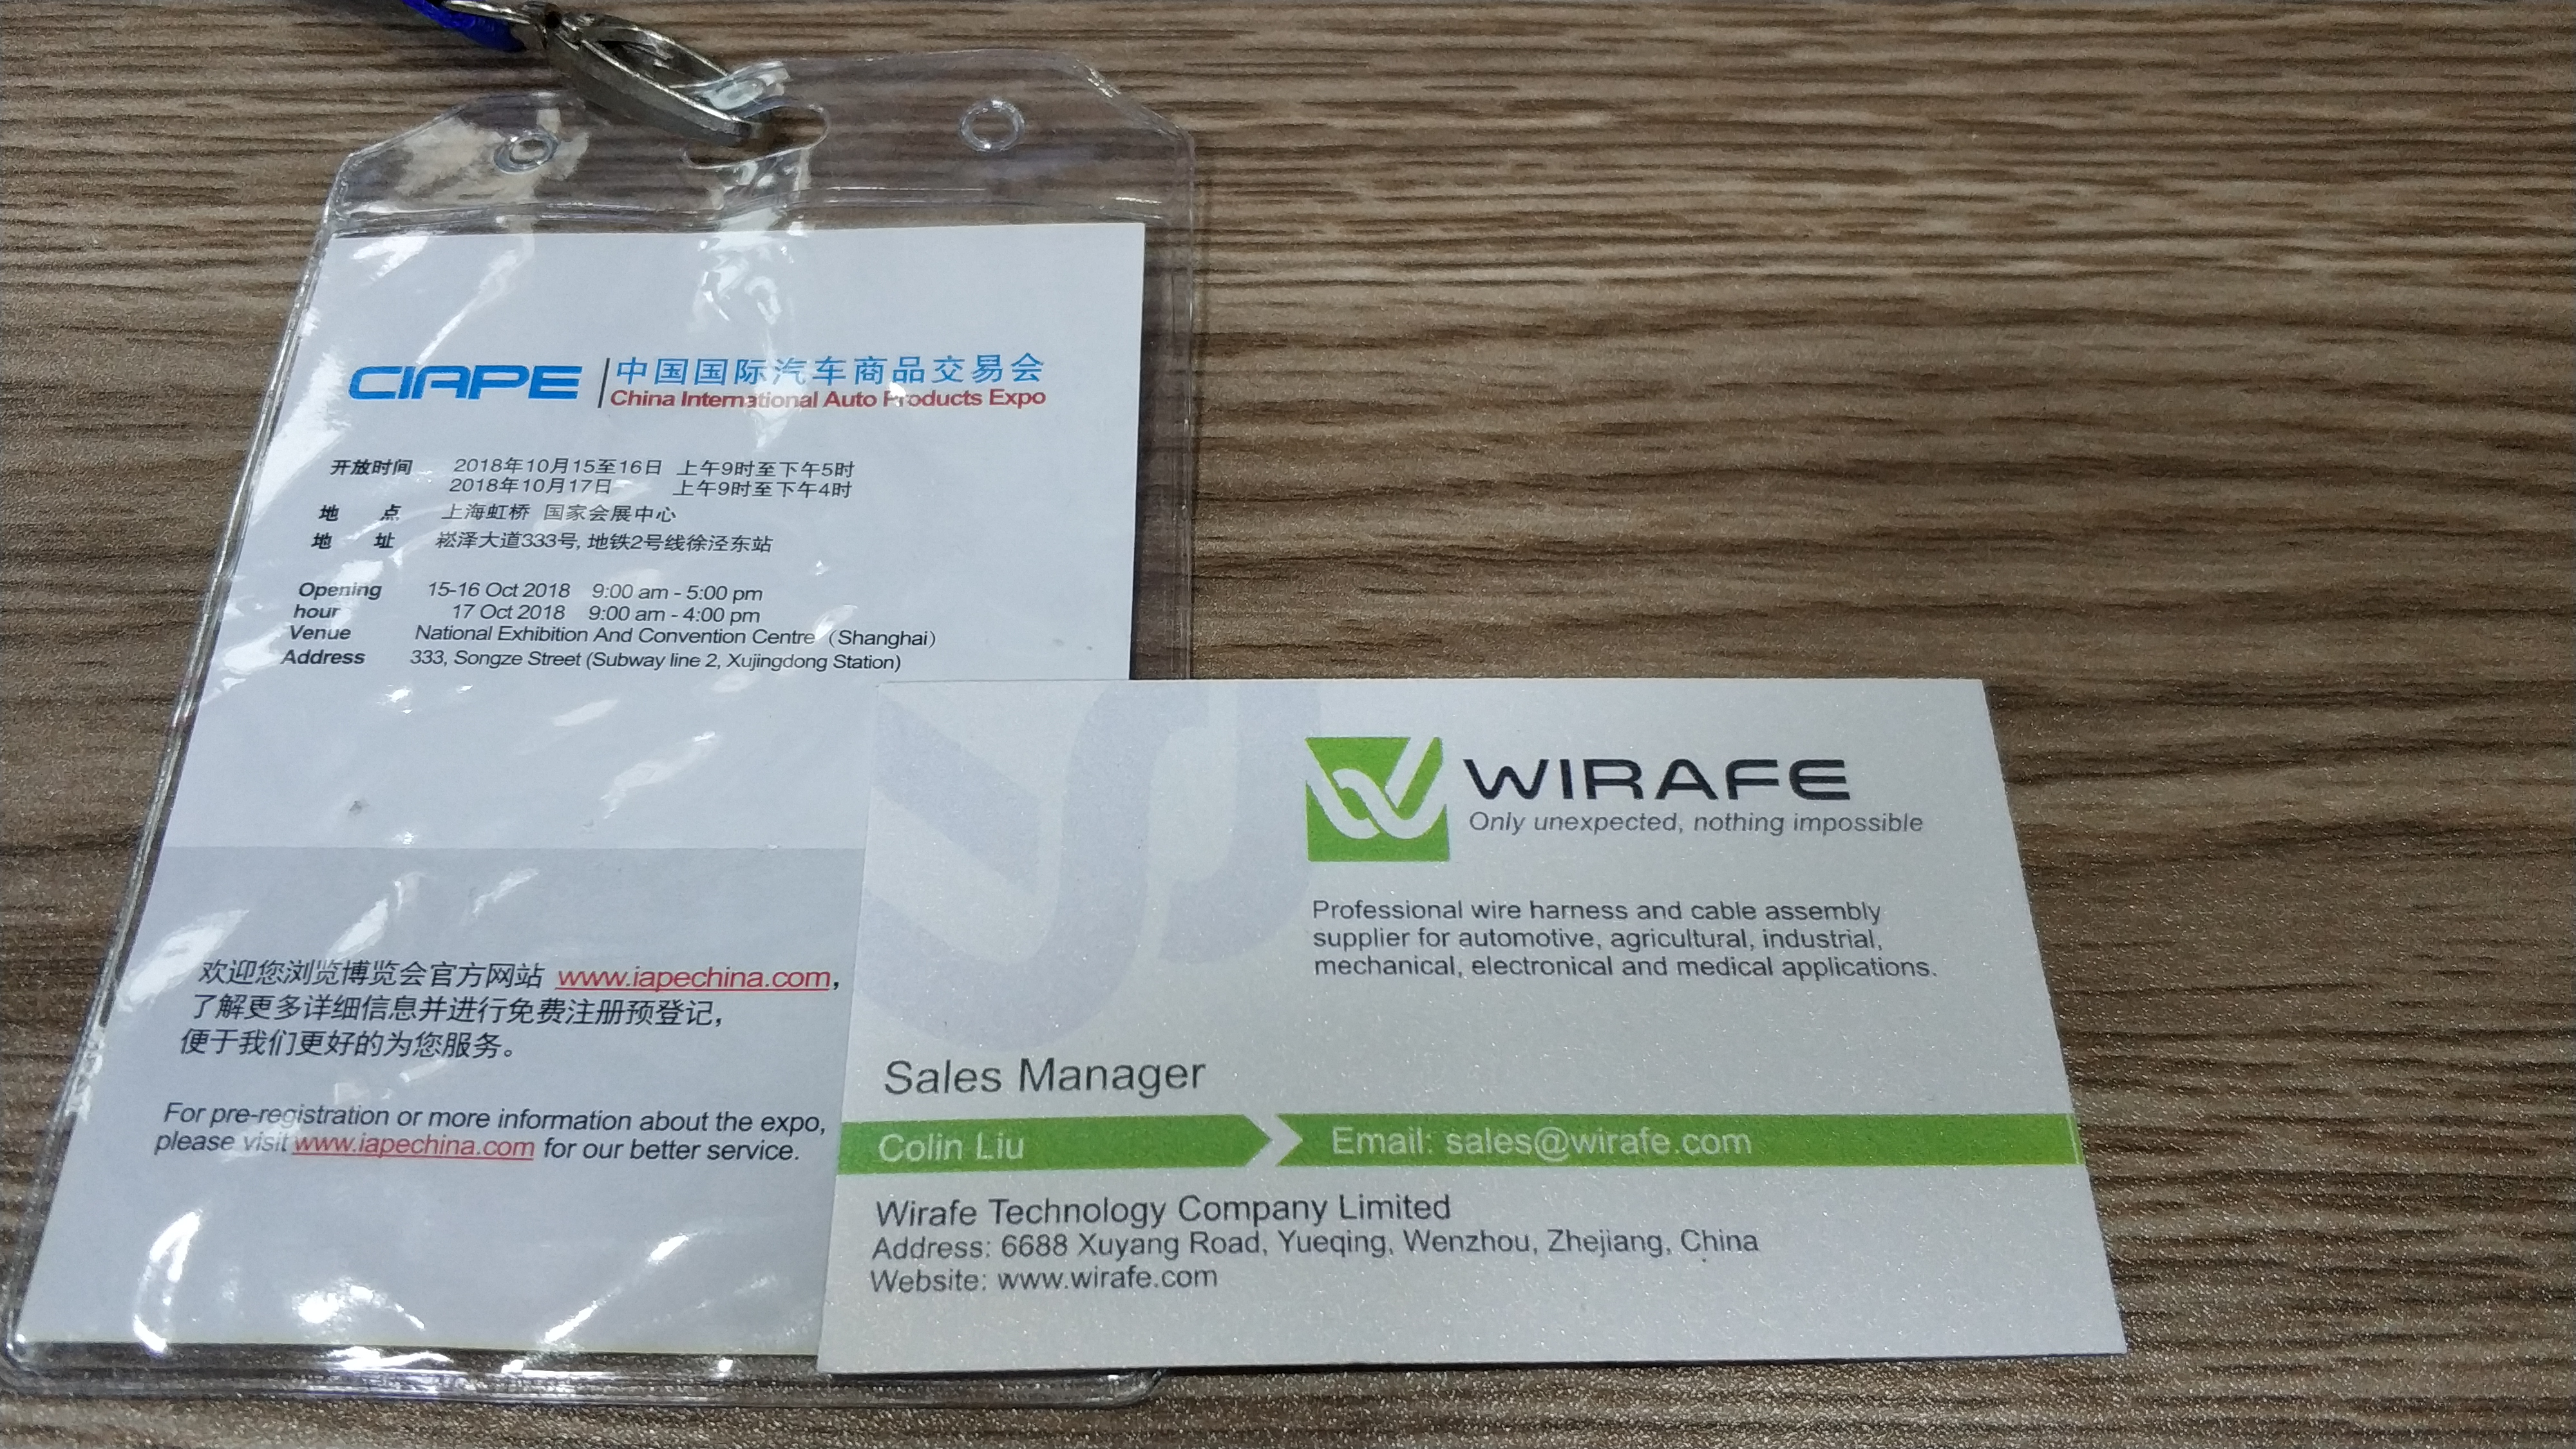 Wirafe Attended China International Auto Products Expo 2018 - Wirafe